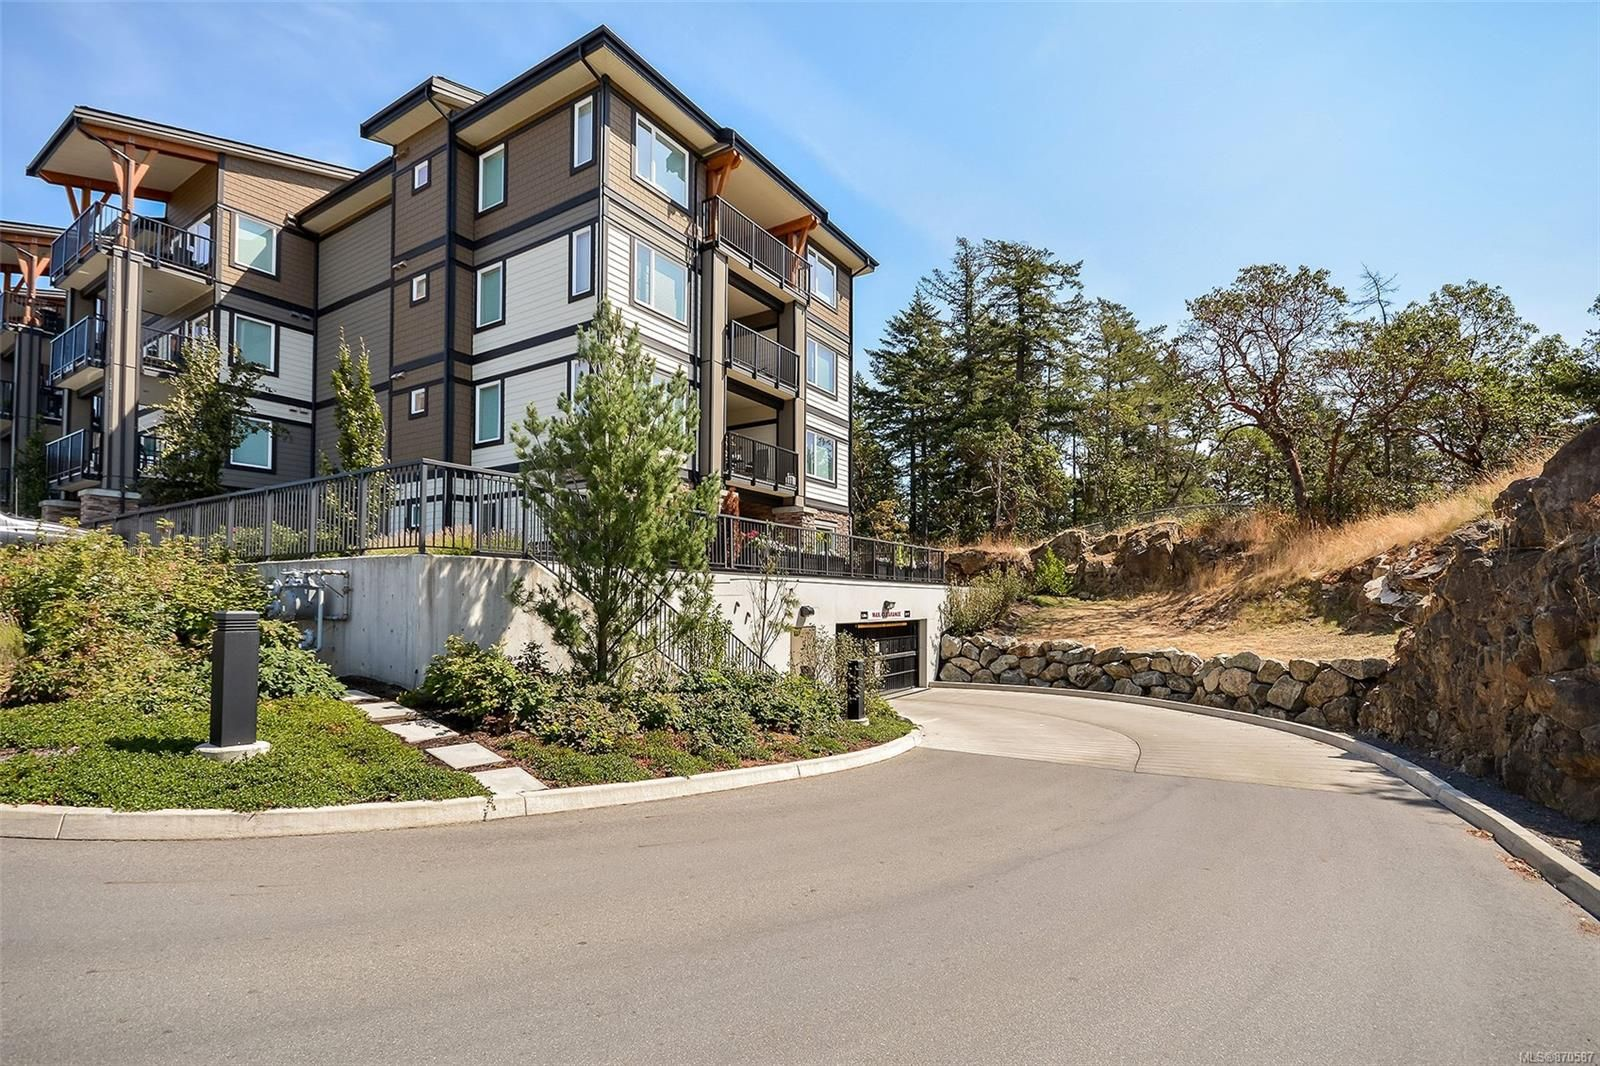 Main Photo: 102 290 Wilfert Rd in : VR View Royal Condo for sale (View Royal)  : MLS®# 870587